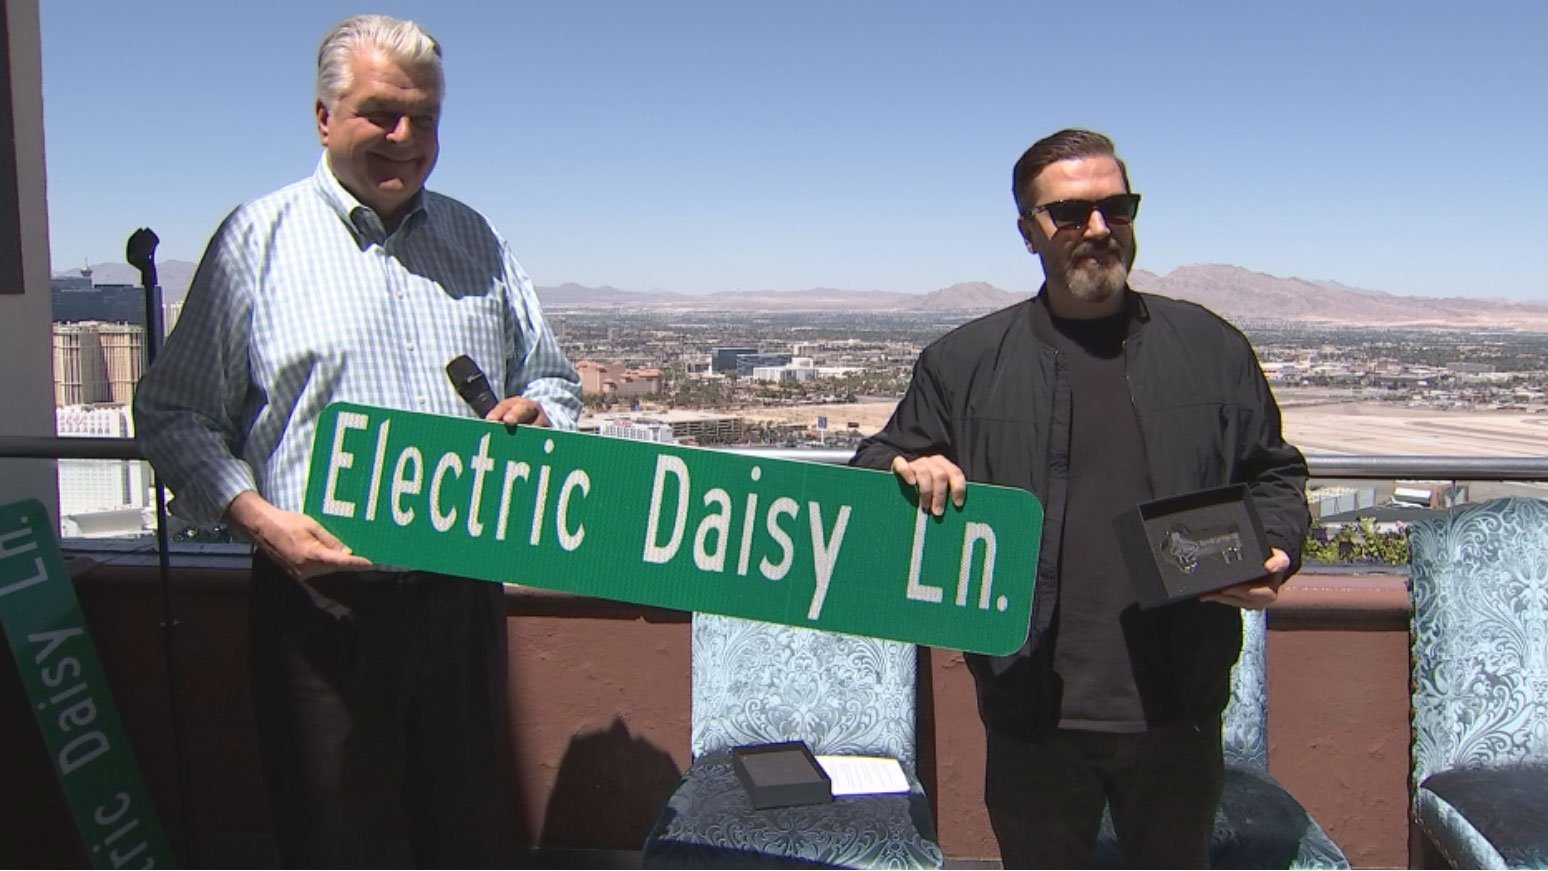 Clark County Commissioner Steve Sisolak present the new sign on June 14, 2017. (Gai Phanalasy/FOX5)